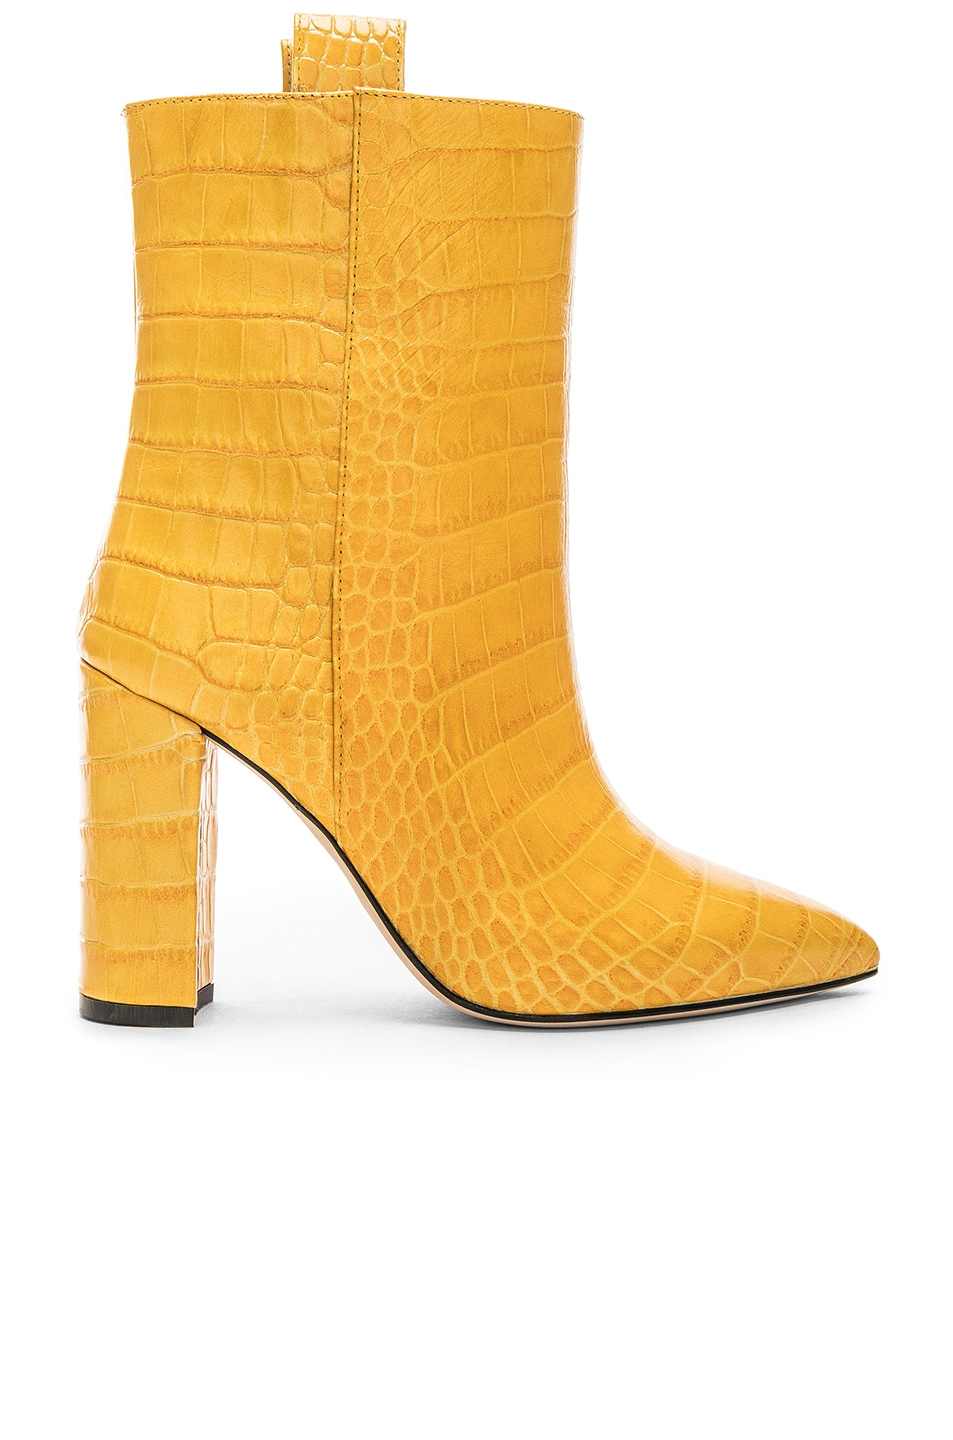 Image 1 of Paris Texas Ankle Boot in Yellow Croc